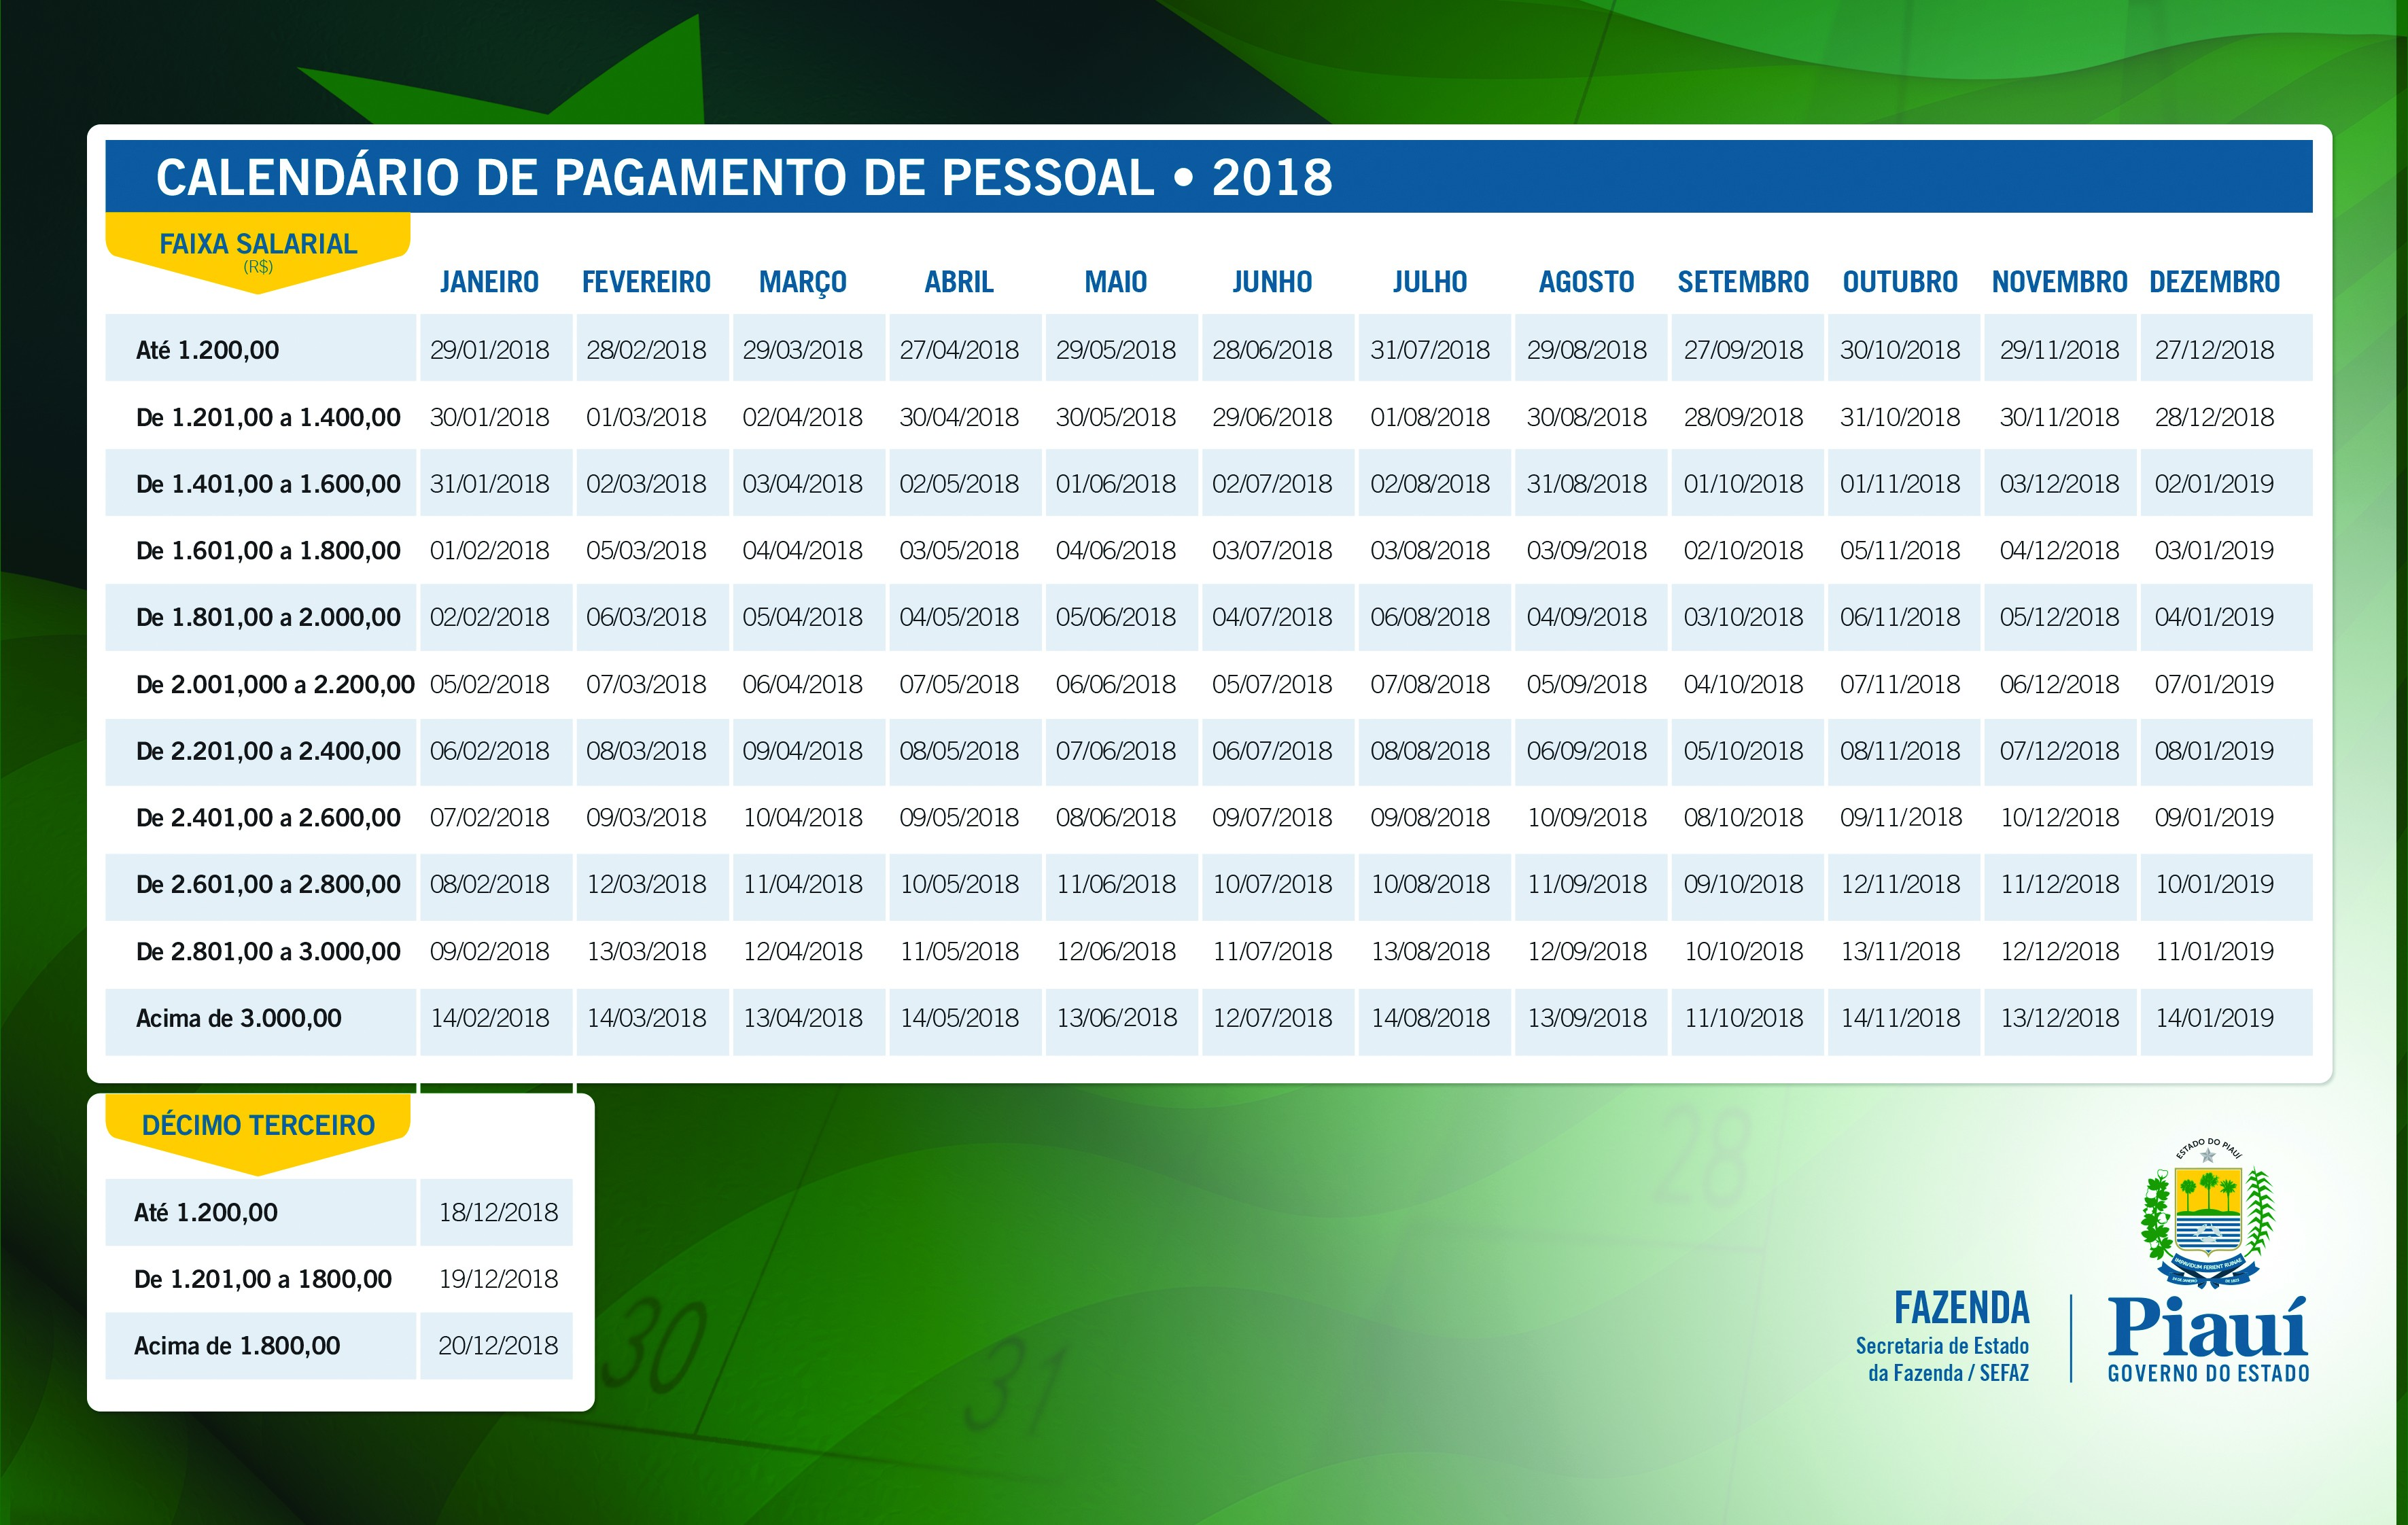 Calendario 2019 Feriados Oficiais Actual Portal Do Governo Do Estado Do Piau­ Of Calendario 2019 Feriados Oficiais Actual Portal Do Governo Do Estado Do Piau­